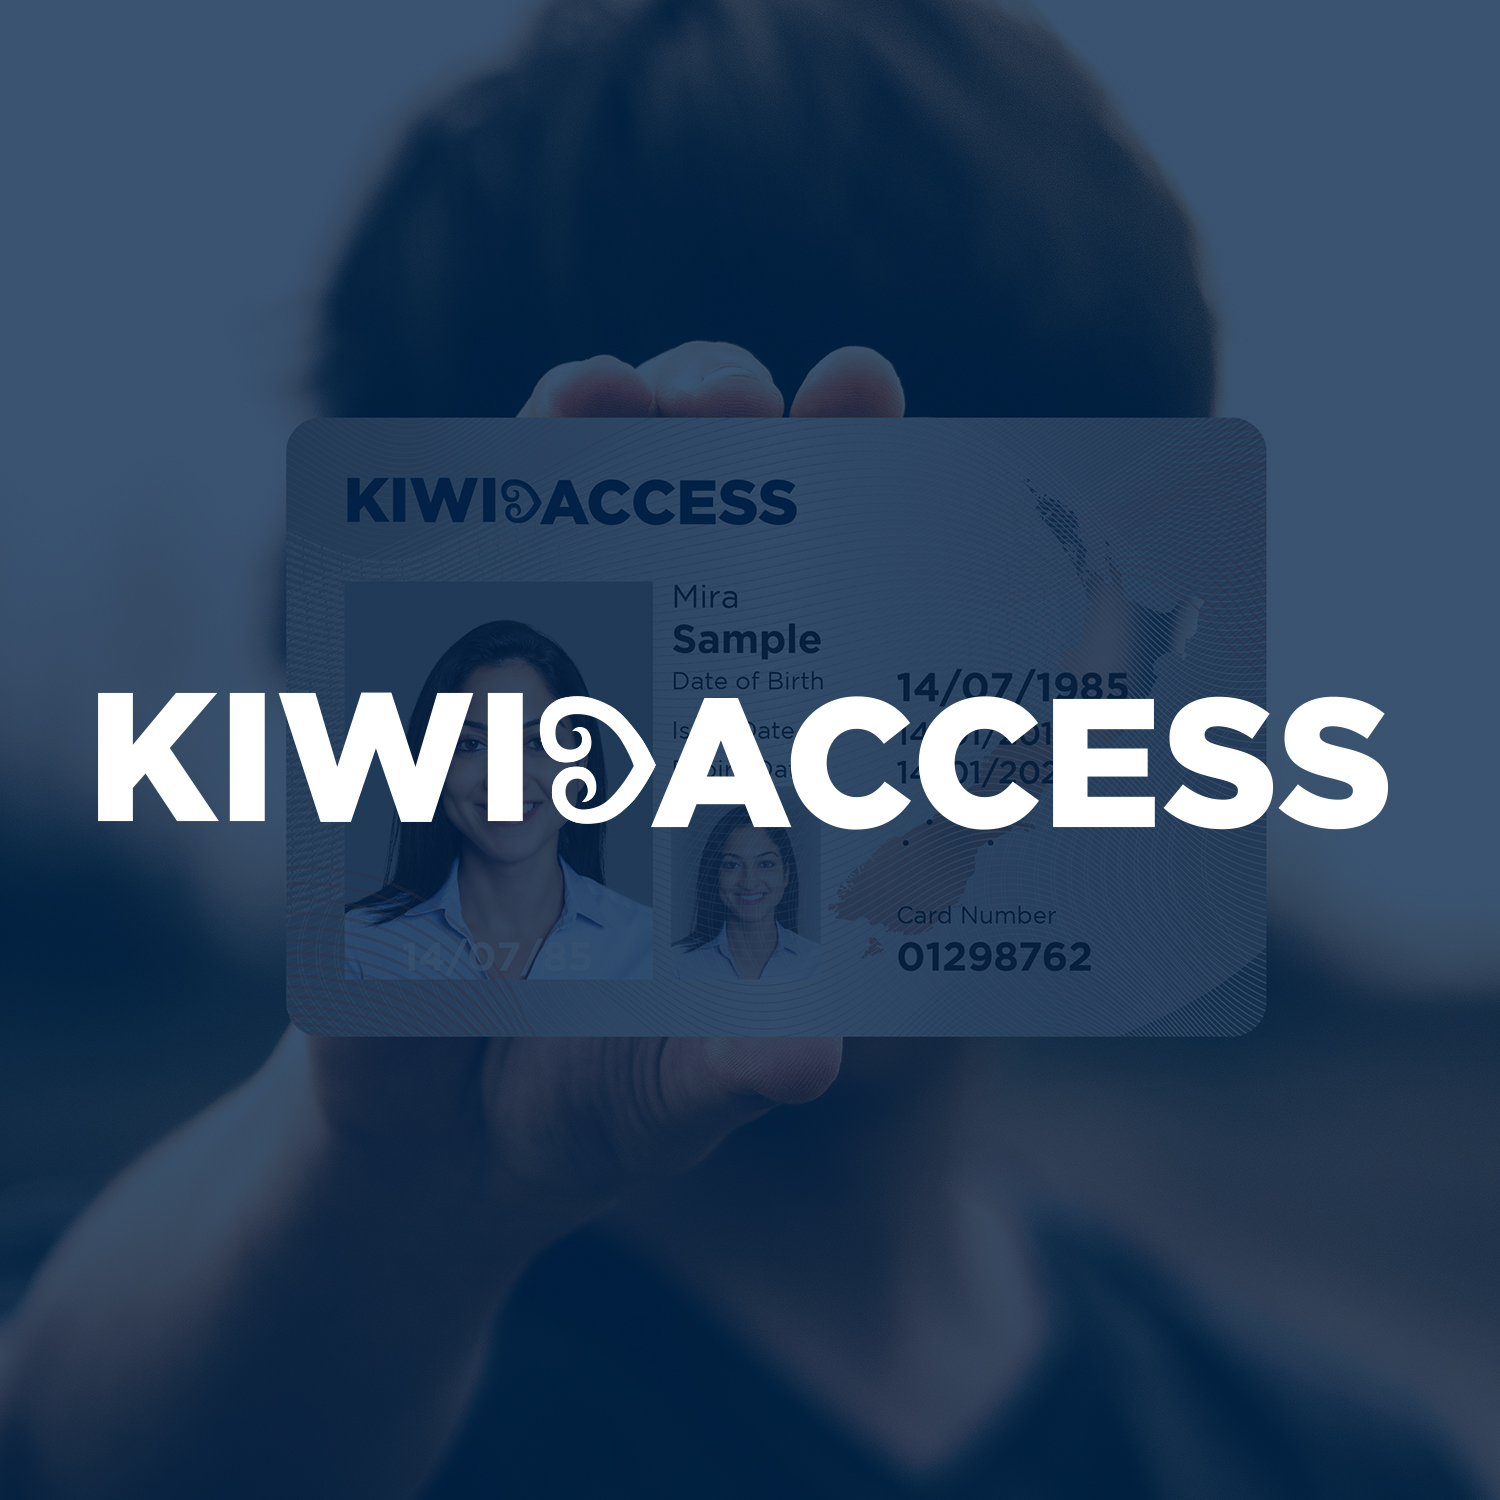 Kiwi Access Card Apply For Evidence Of Age And Identity